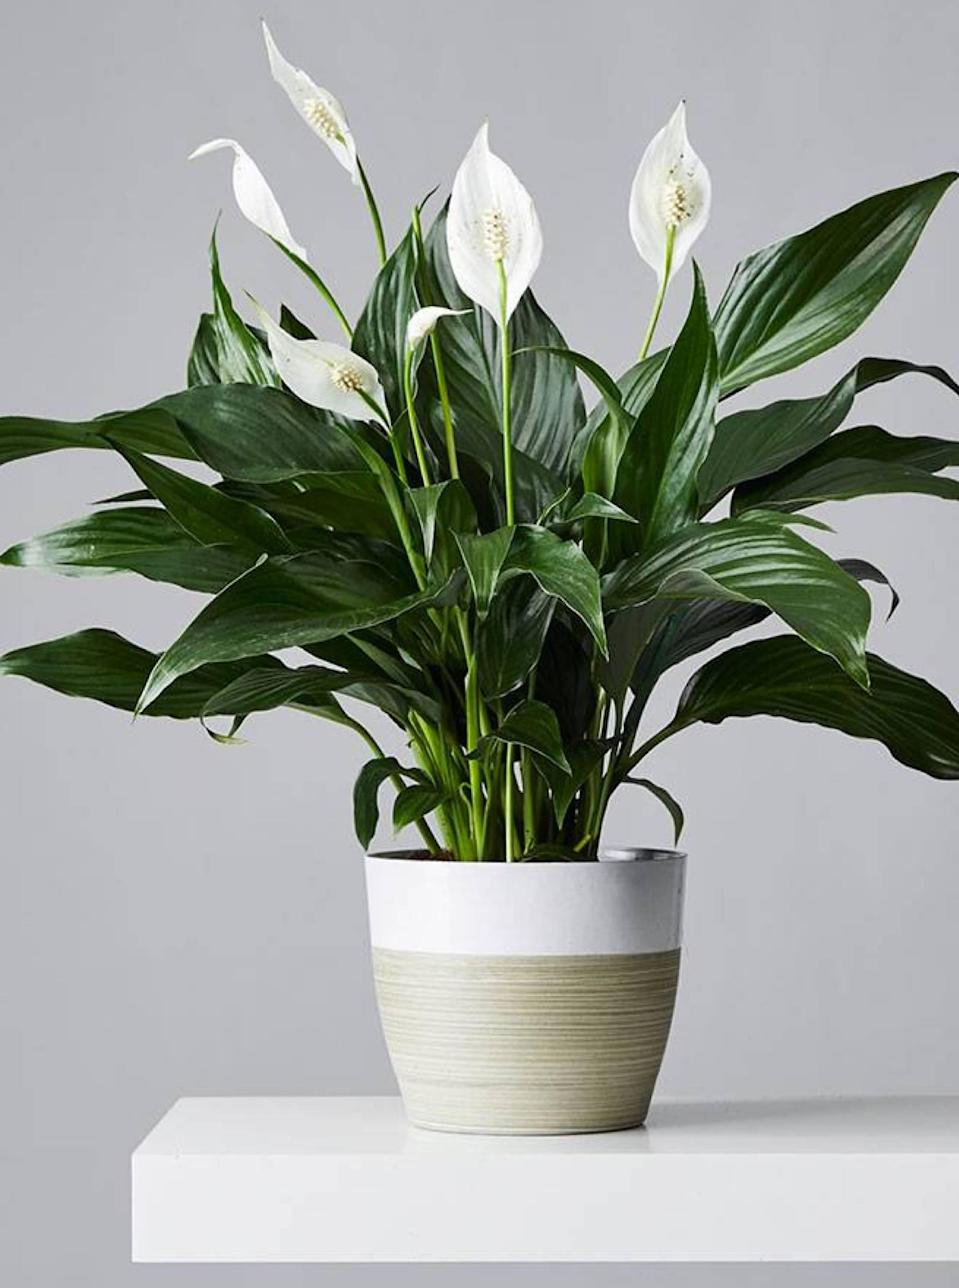 """If you want to give a gift that lasts longer than a week, try a potted plant from Plants.com. This Peace Lily is gorgeous and sophisticated, but the company has so many other choices—from window sill succulents to larger-than-life floor plants. You can filter your search by size, room, or lifestyle need (read: pet-friendly or air-purifying). The online retailer ships nationwide, with next-day delivery available in select zip codes. $55, Peace Lily Plant. <a href=""""https://www.plants.com/p/peace-lily-plant-157654?"""" rel=""""nofollow noopener"""" target=""""_blank"""" data-ylk=""""slk:Get it now!"""" class=""""link rapid-noclick-resp"""">Get it now!</a>"""